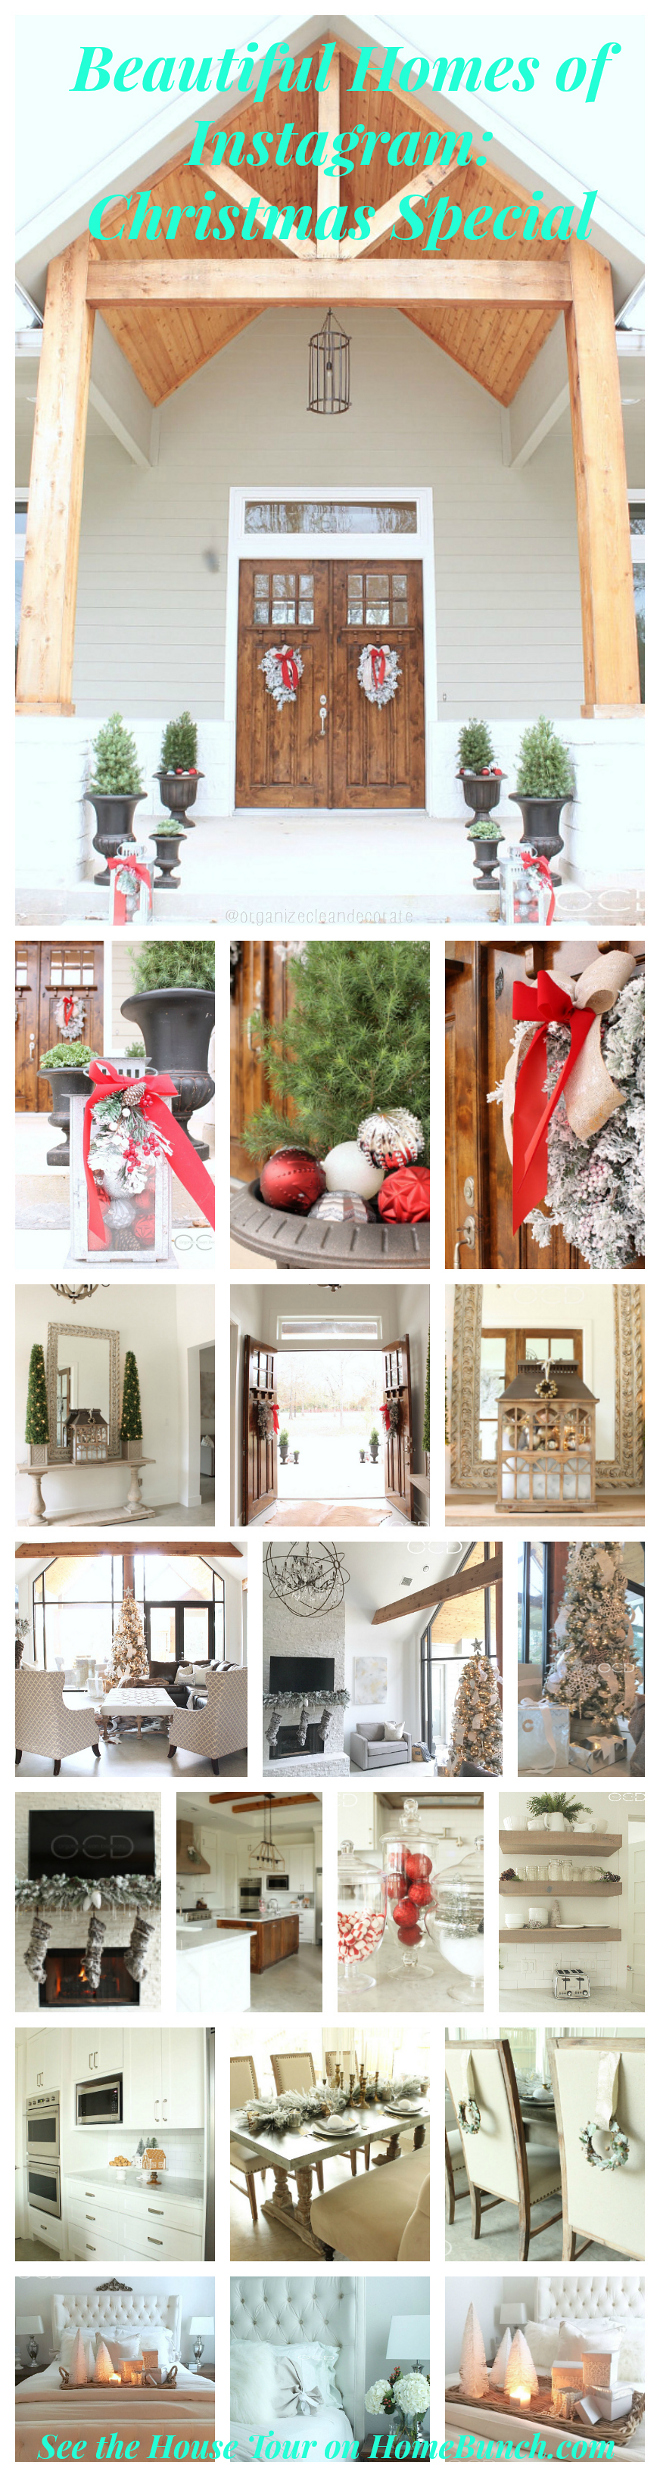 Beautiful Christmas decor brings some extra charm to this stunning home!